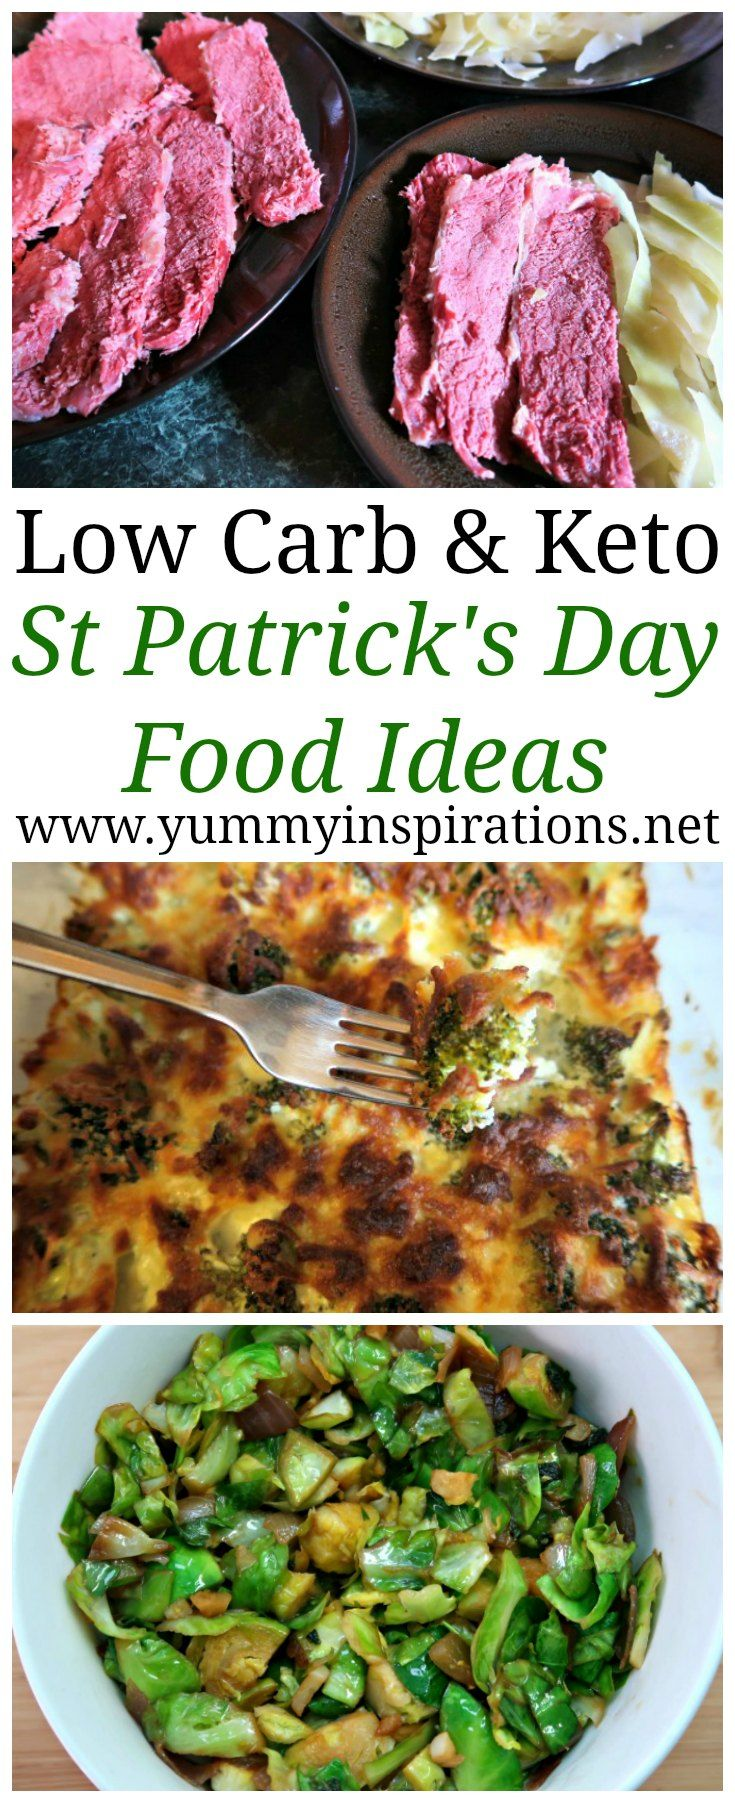 7 Traditional Low Carb St Patrick's Day Food Ideas – Authentic Irish Dishes